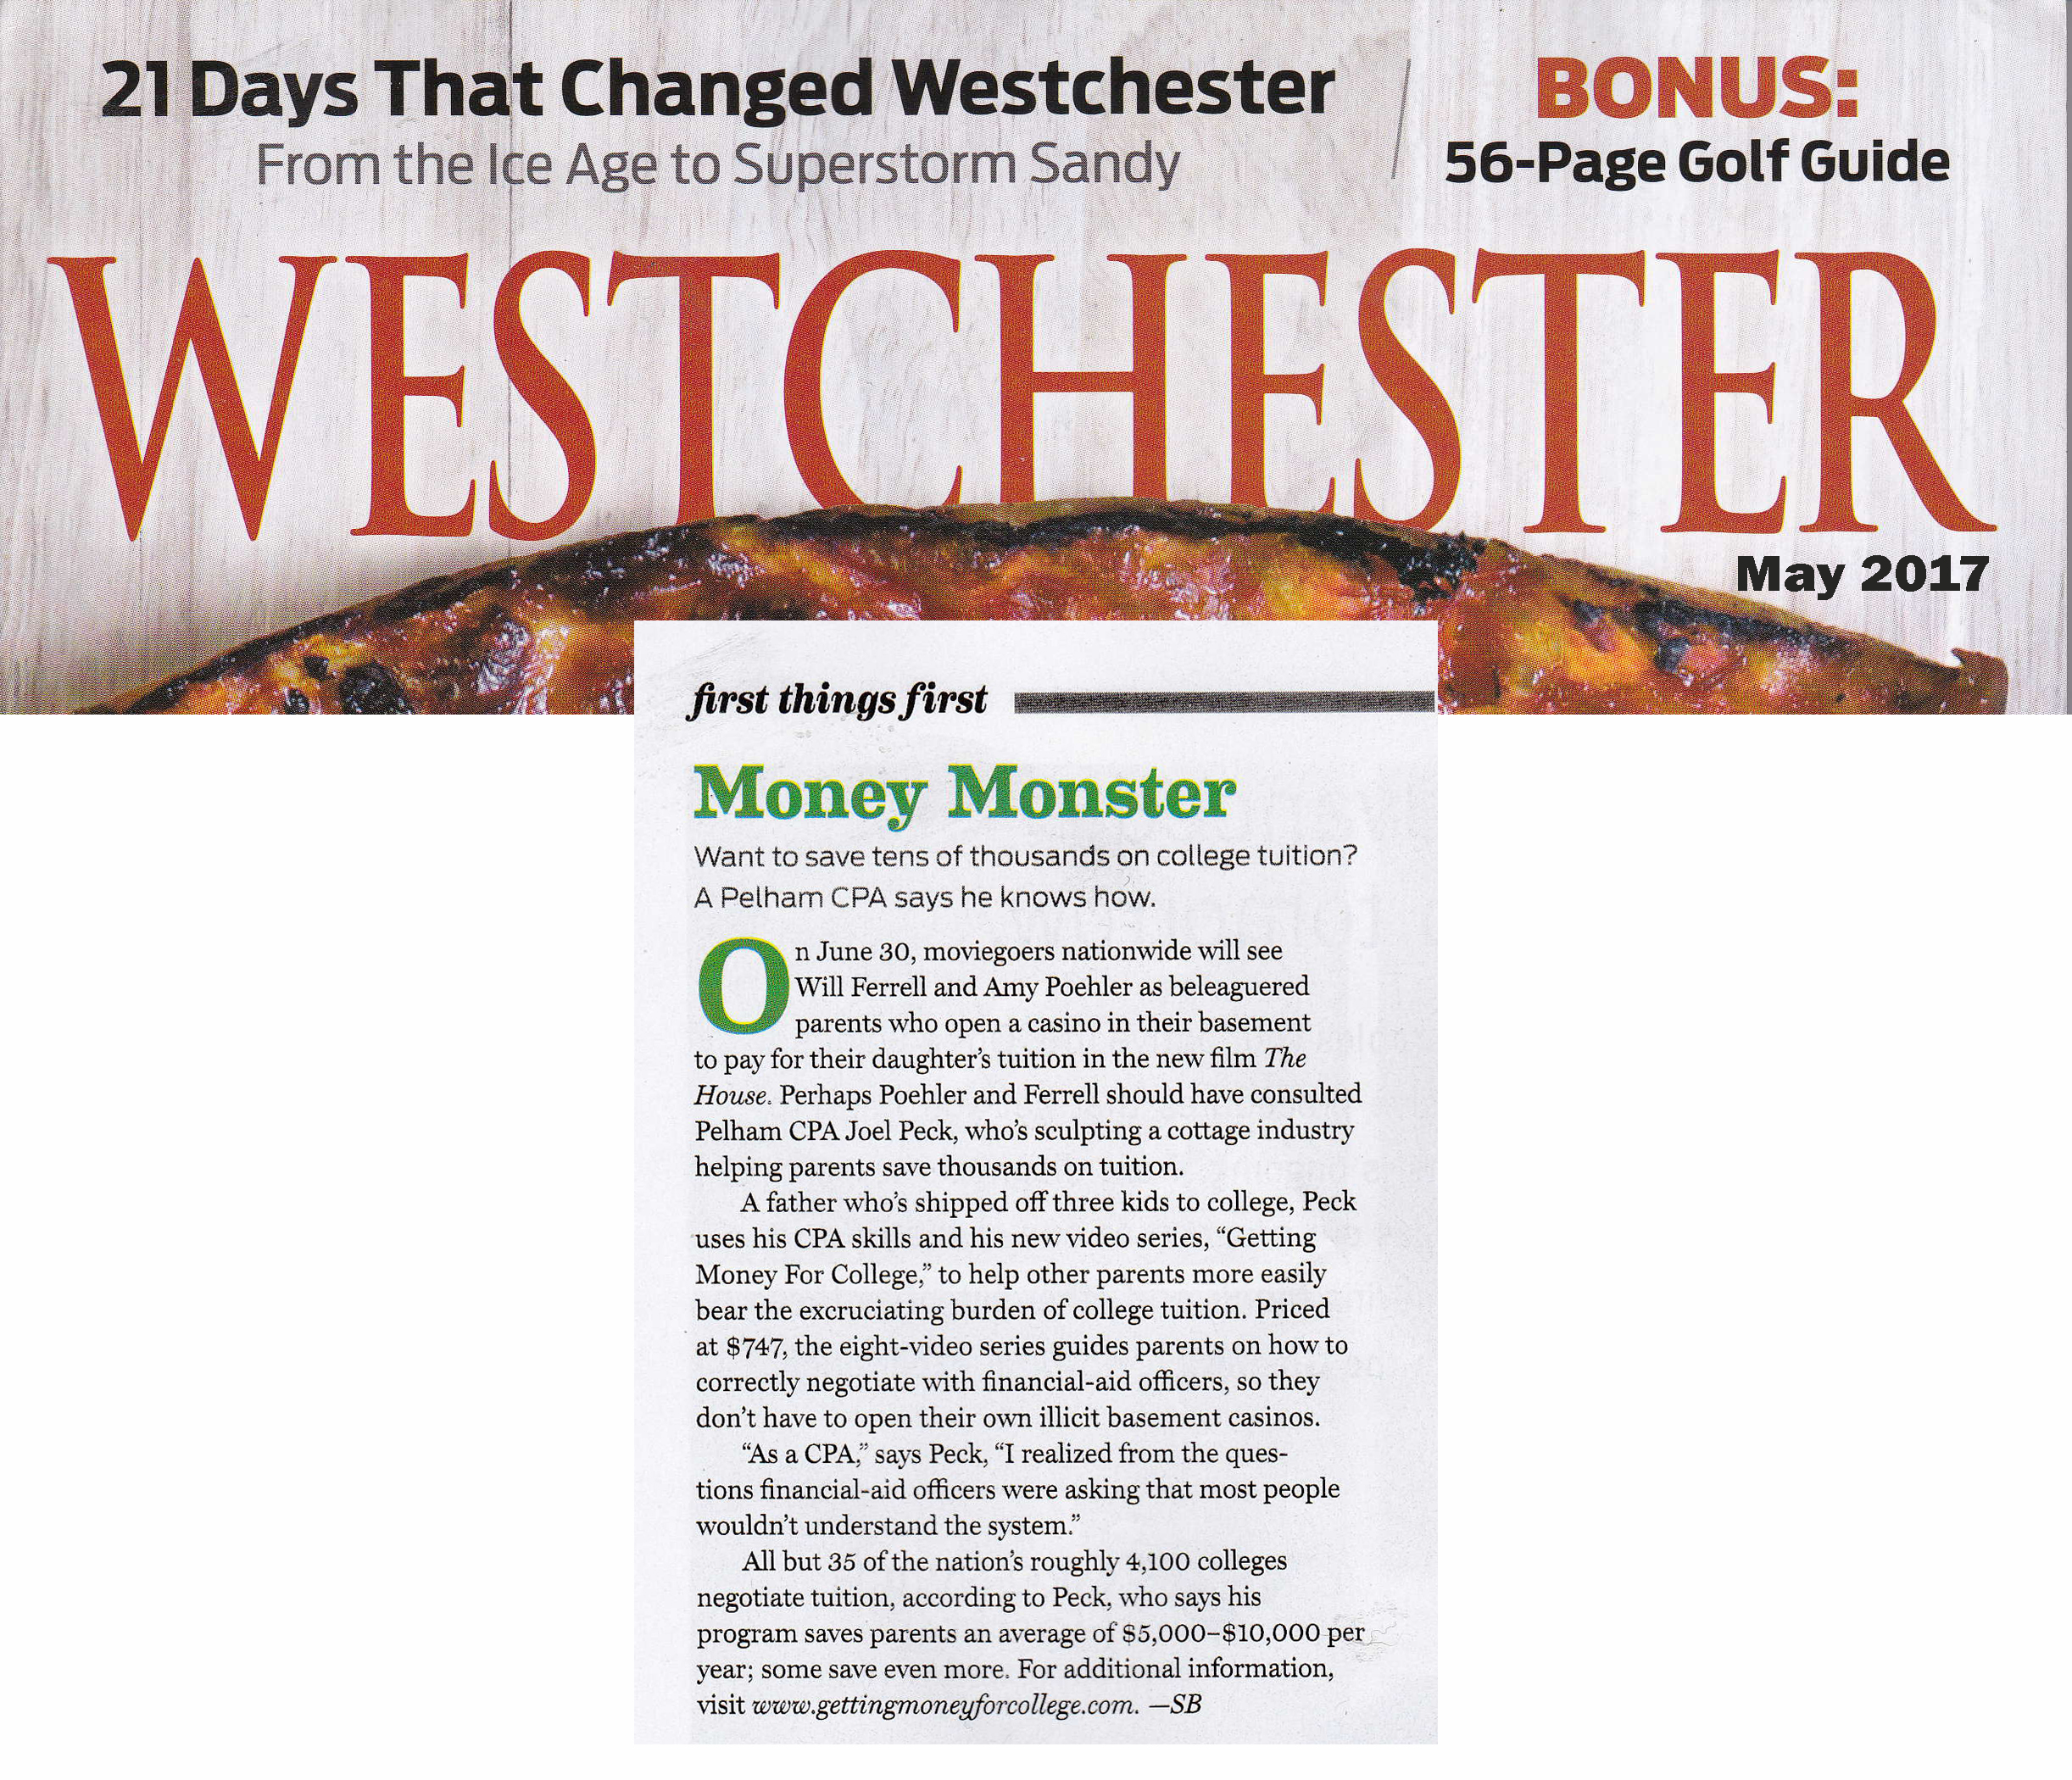 westchester magazine article copy.jpg